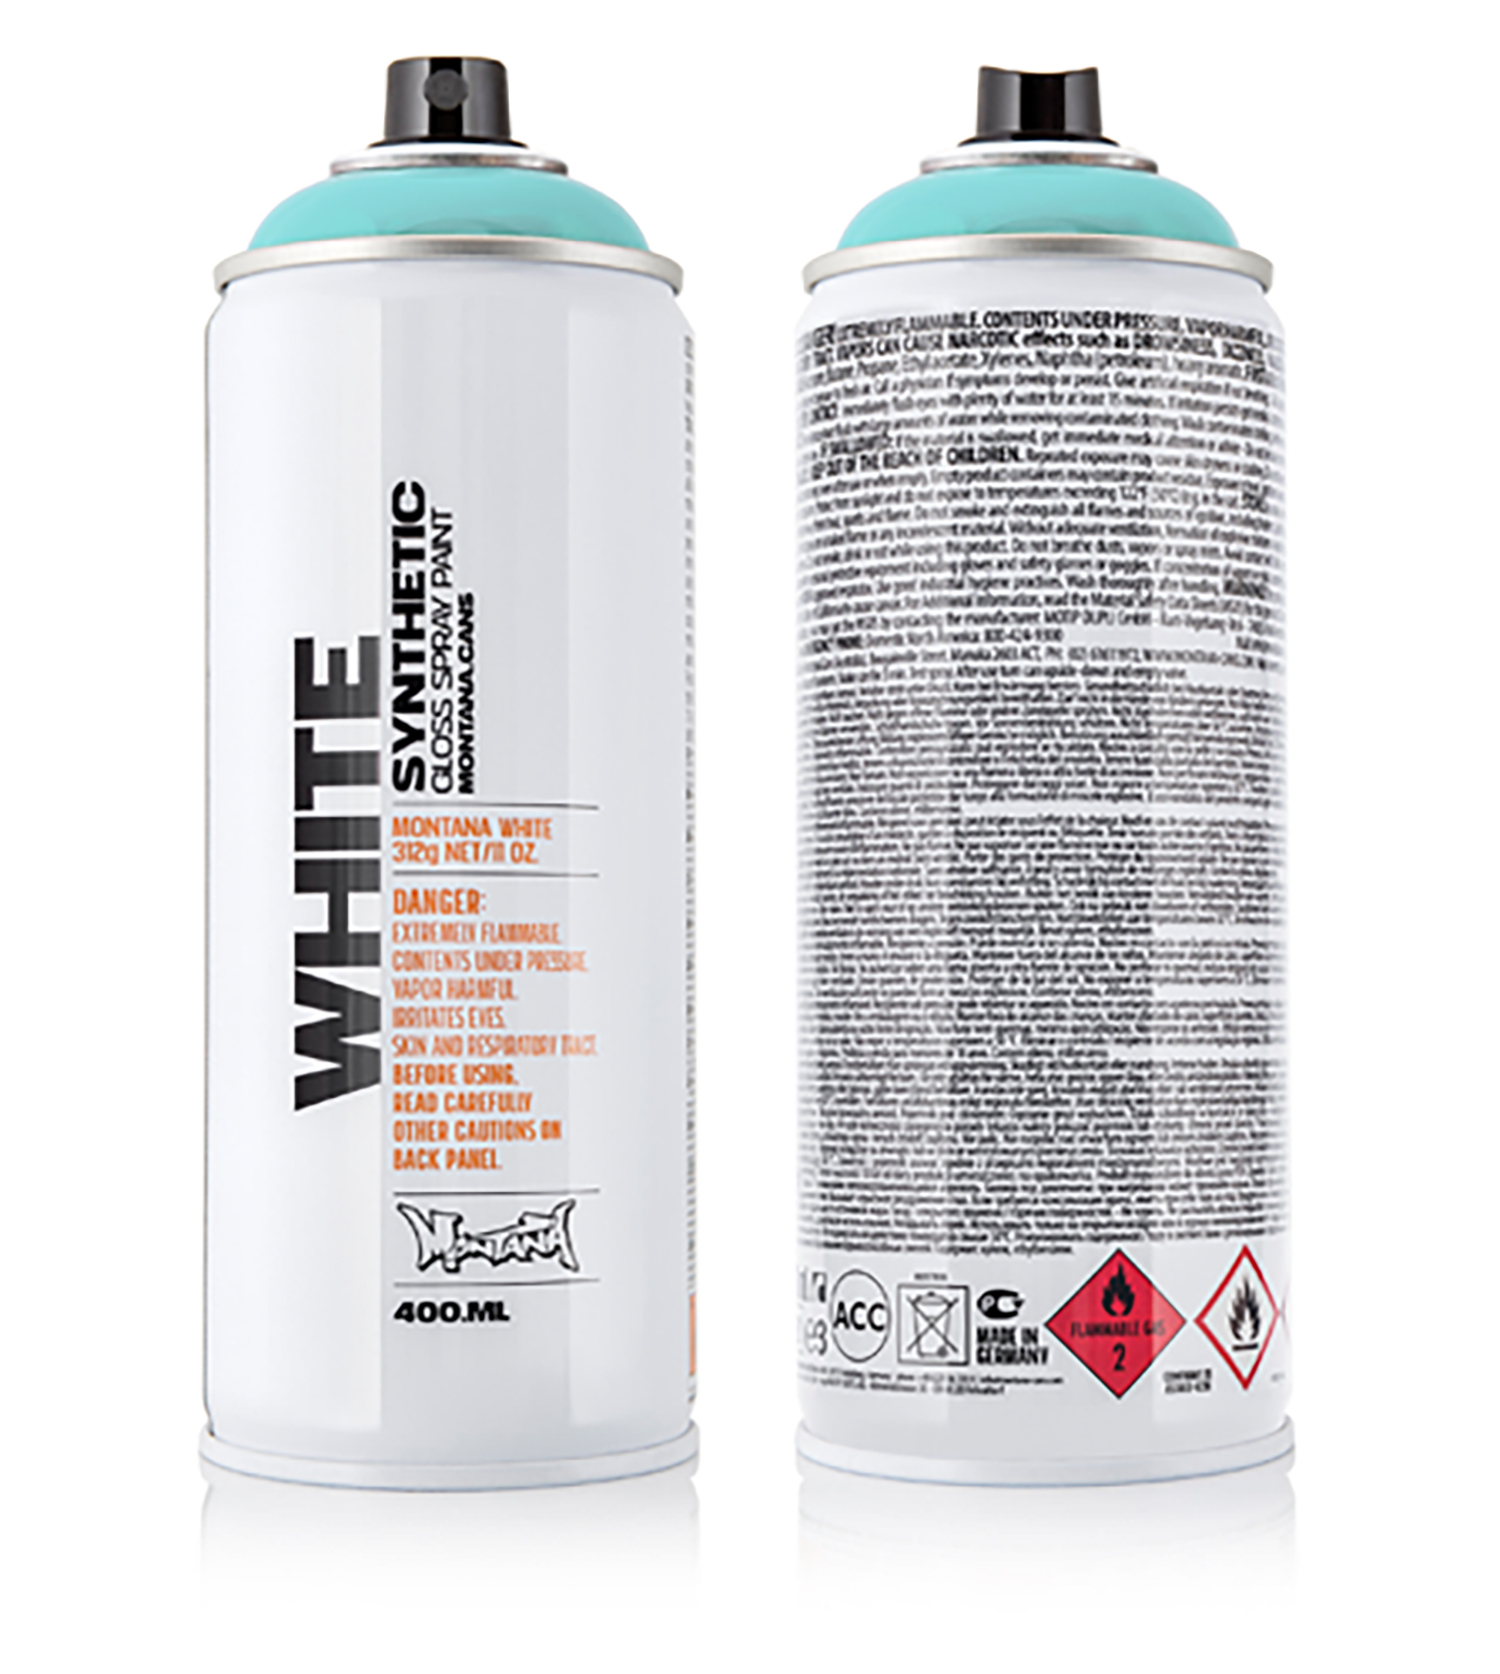 MONTANA-WHITE-SPRAY-400ML-6320